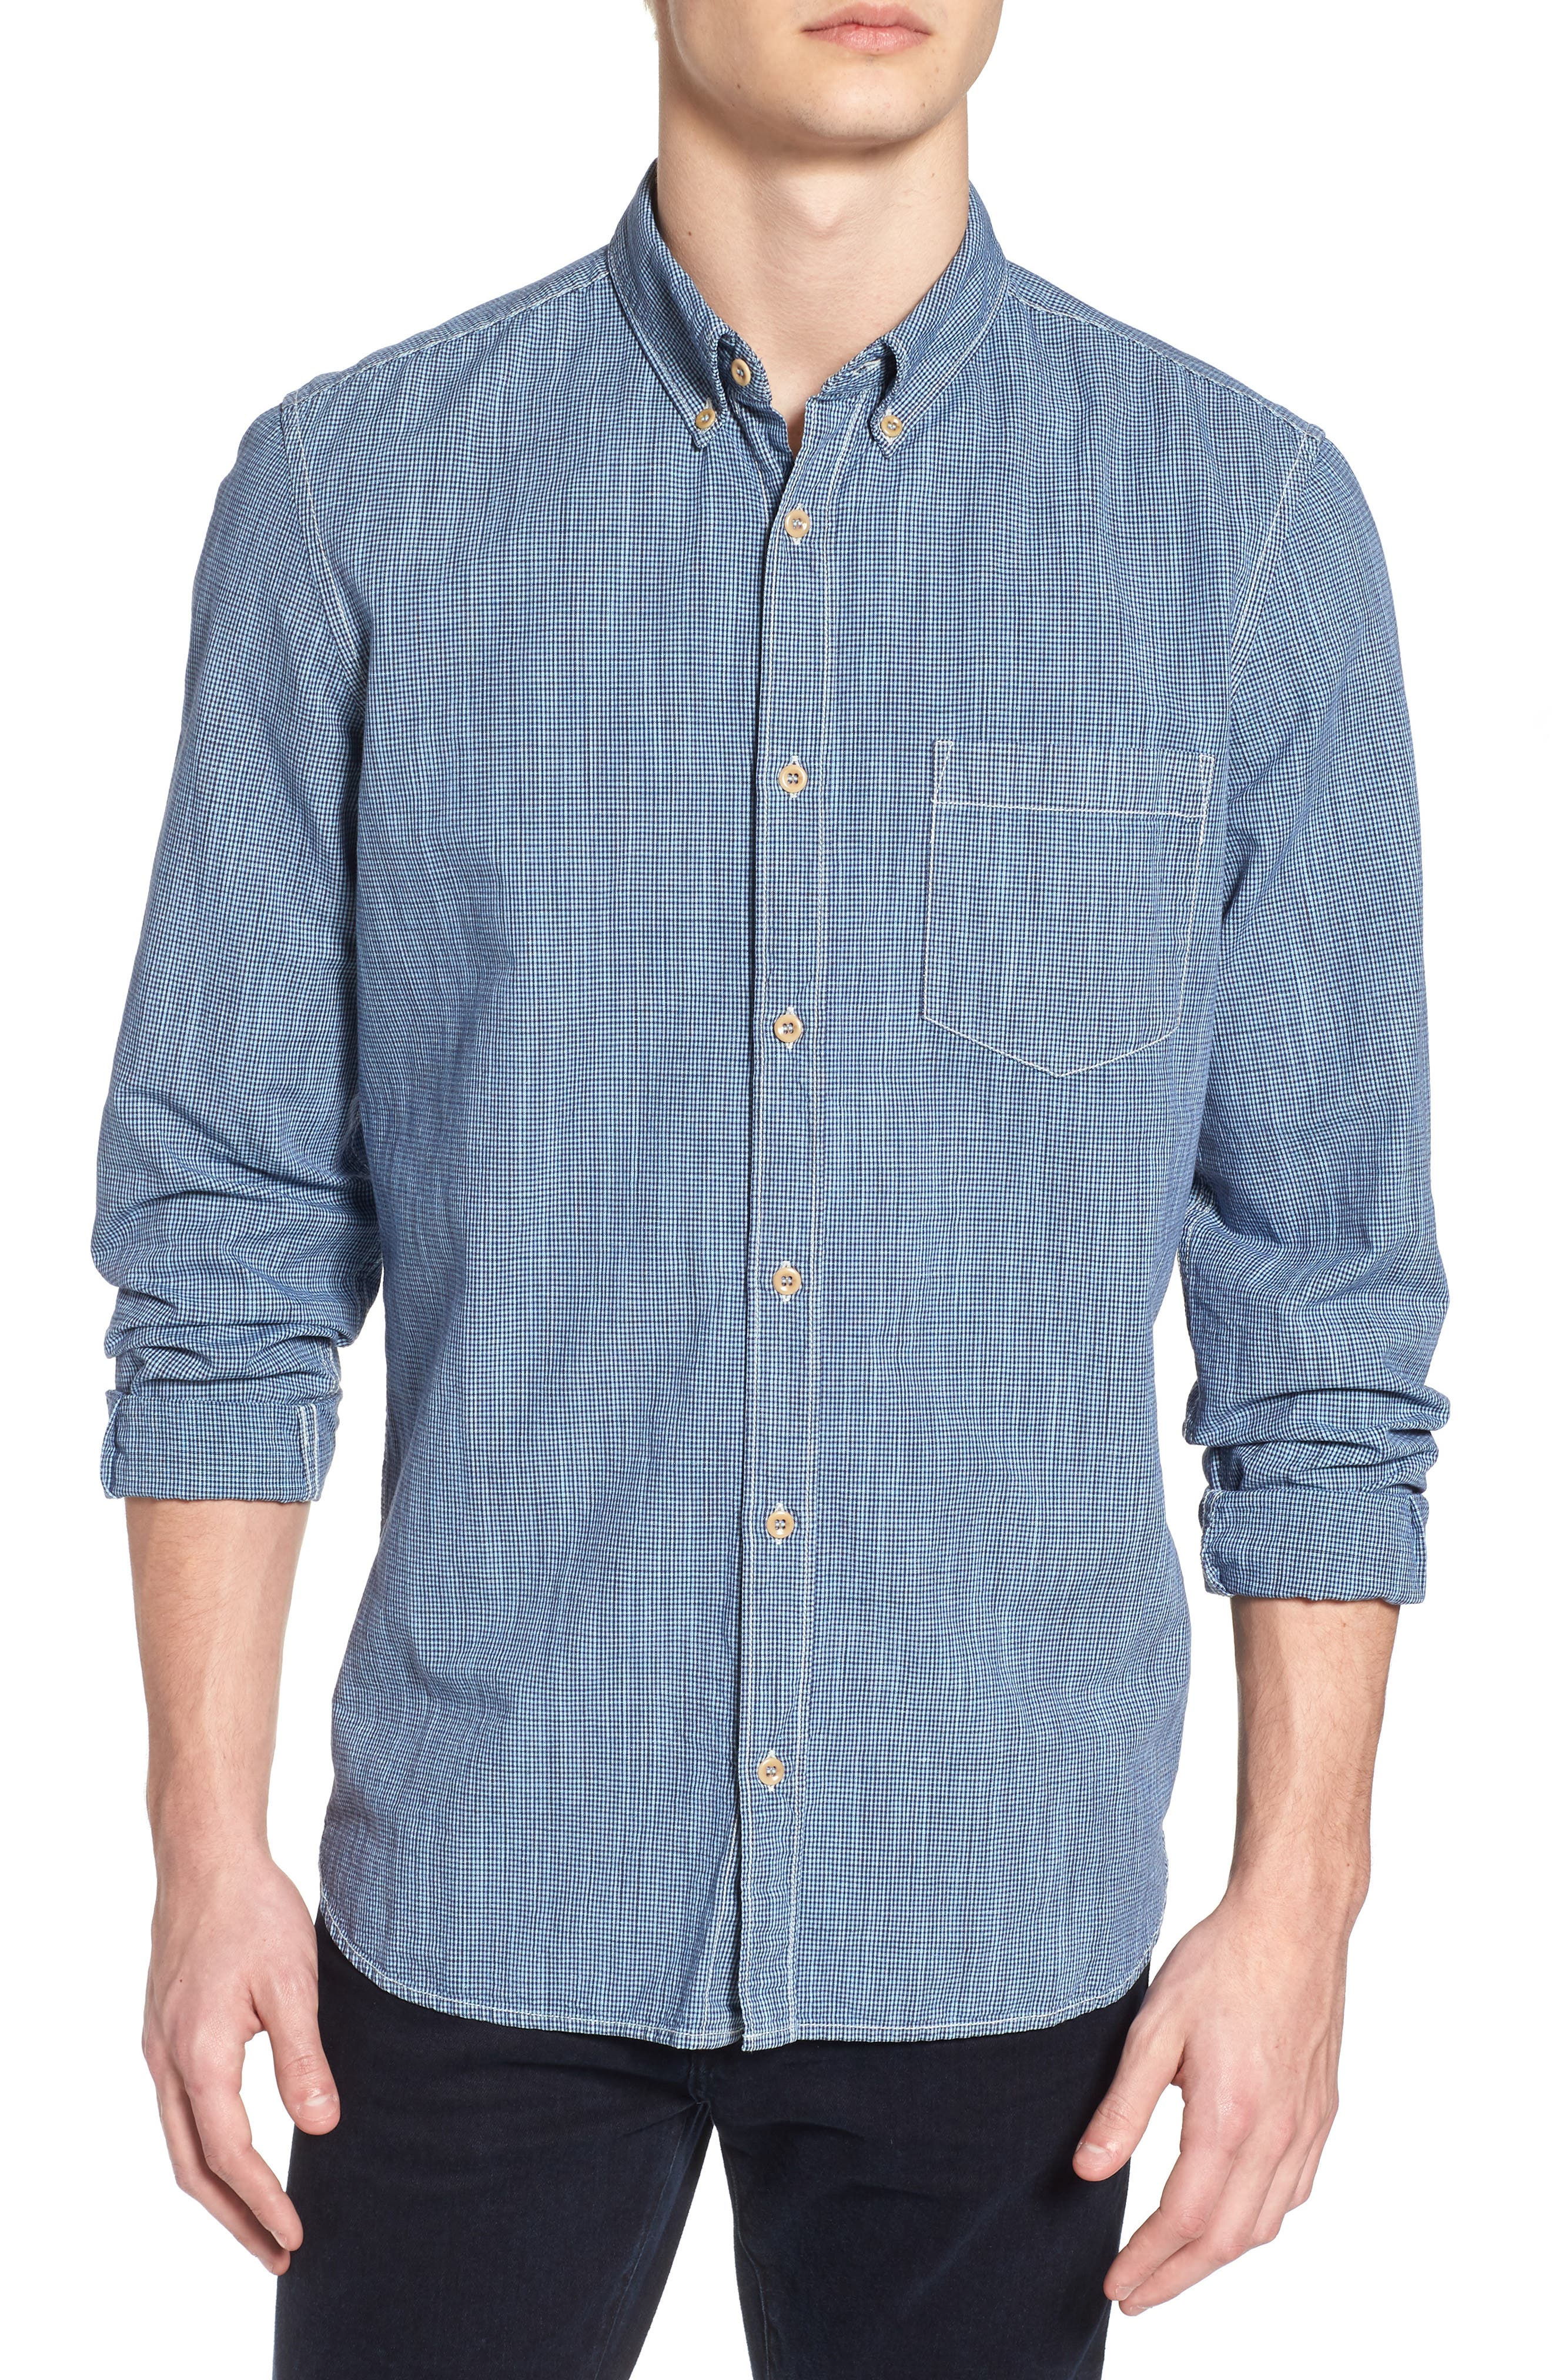 Main Image - French Connection Slim Fit Check Cotton & Linen Sport Shirt